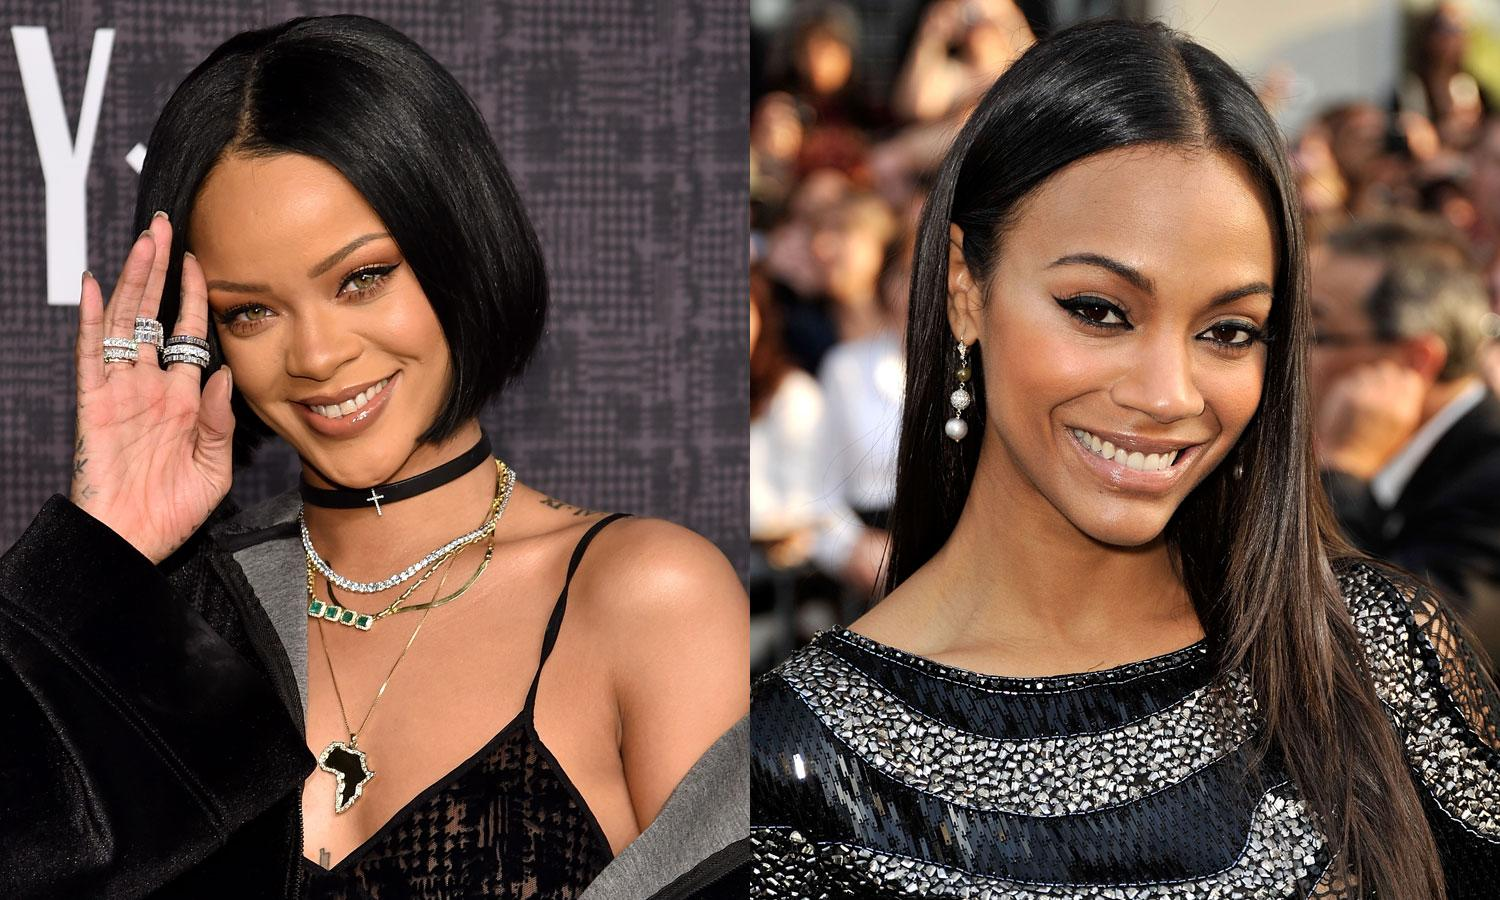 Glass hair isn't a new trend, says celebrity hairstylist